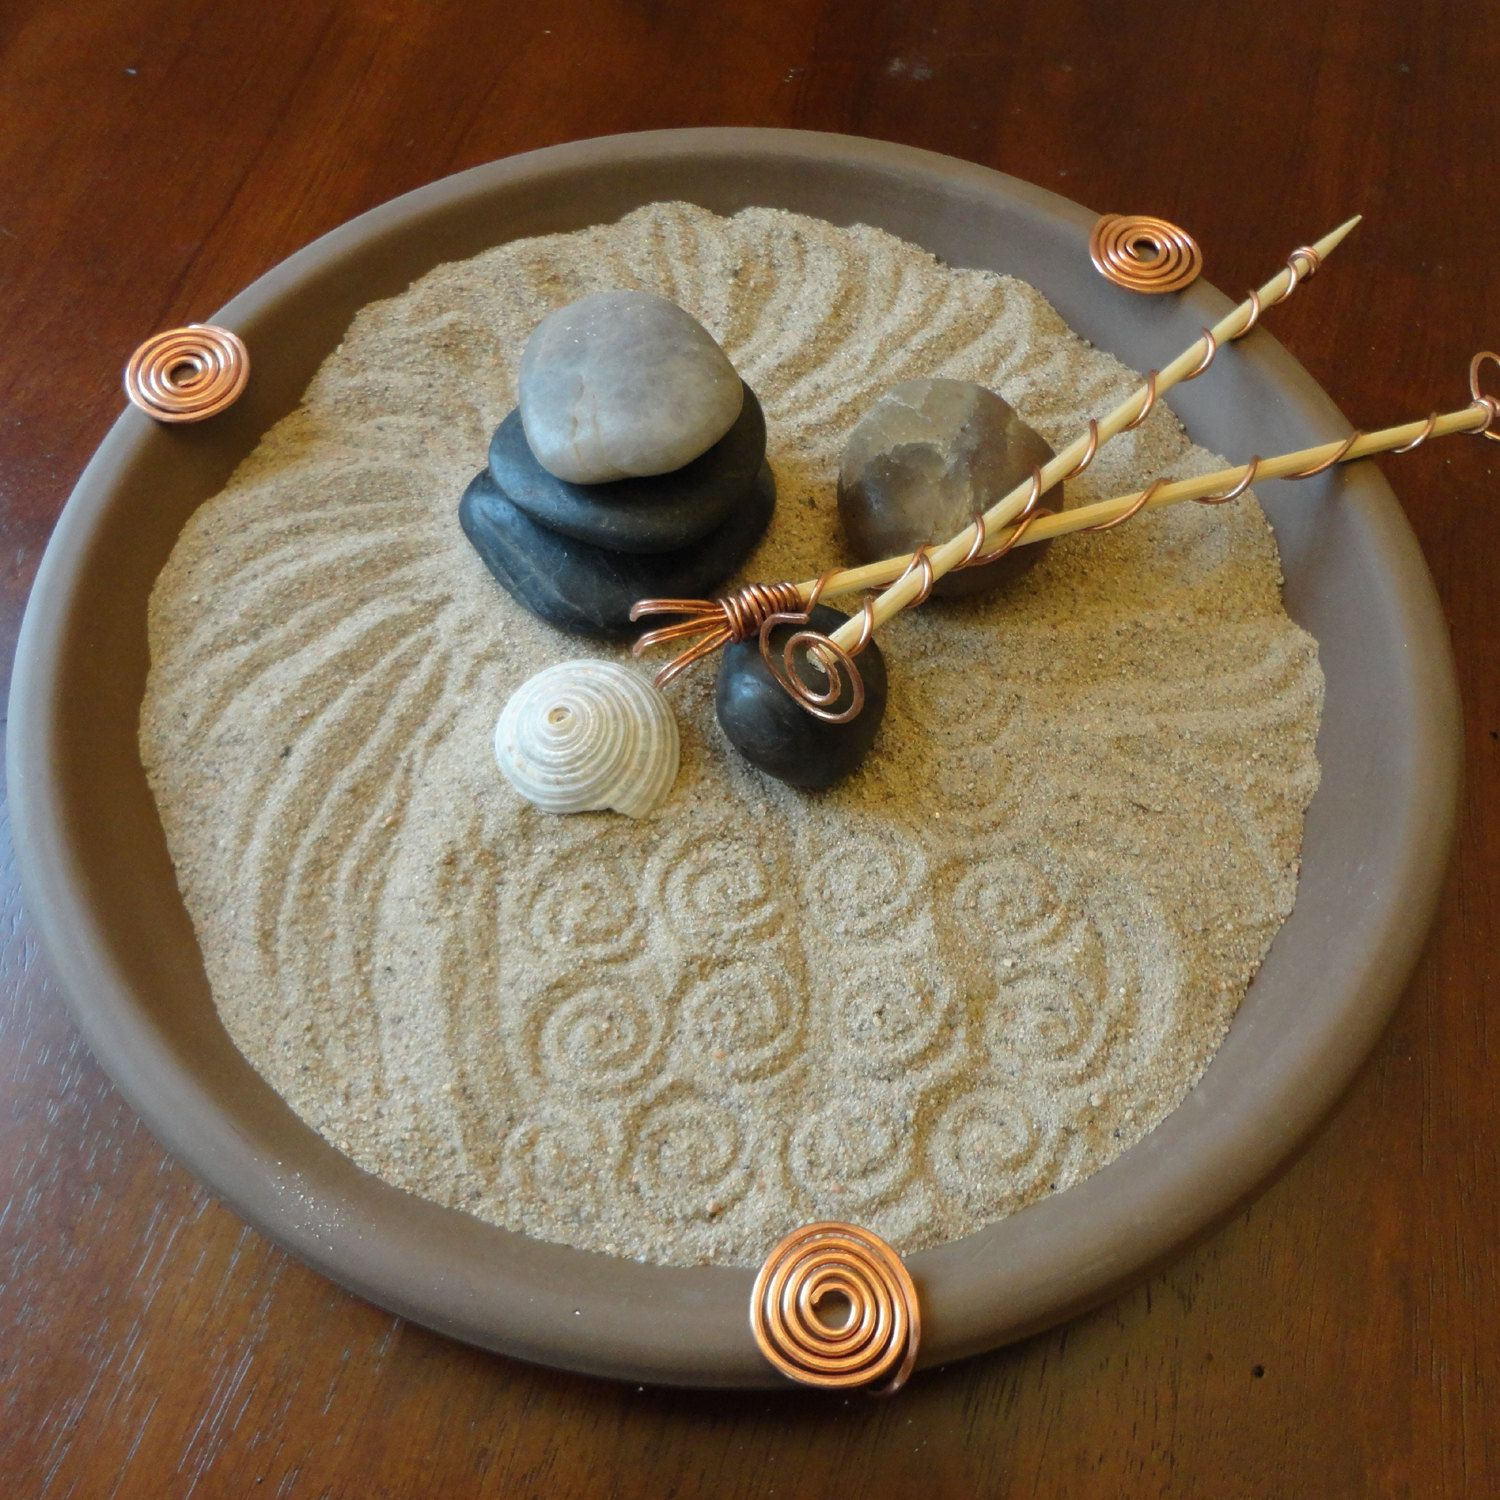 Table Top Zen Garden Tabletop Zen Garden Chocolate Brown Center Mini Zen Garden